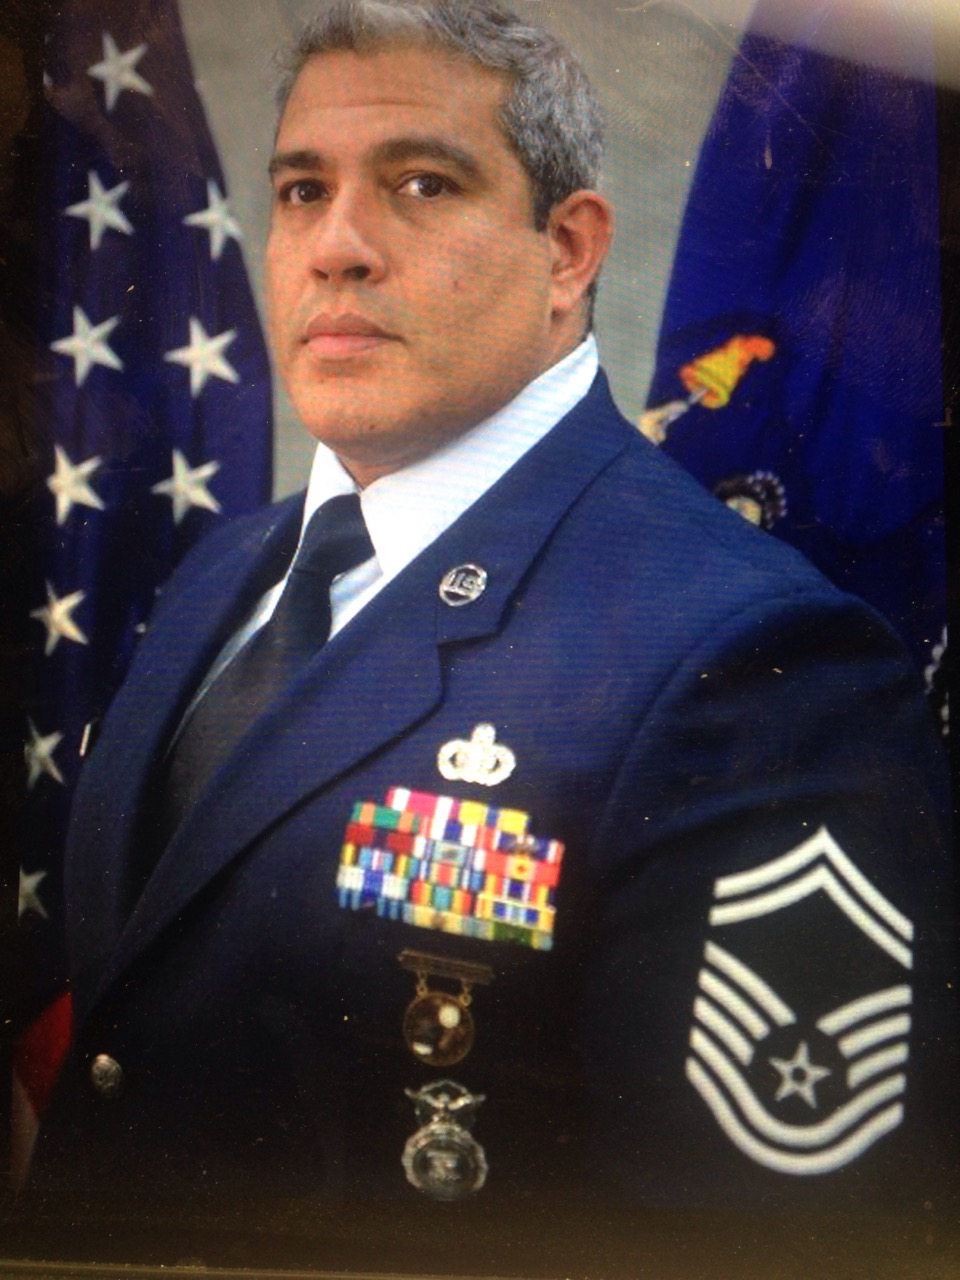 A photo of Federal Agent Eric Fosse in uniform